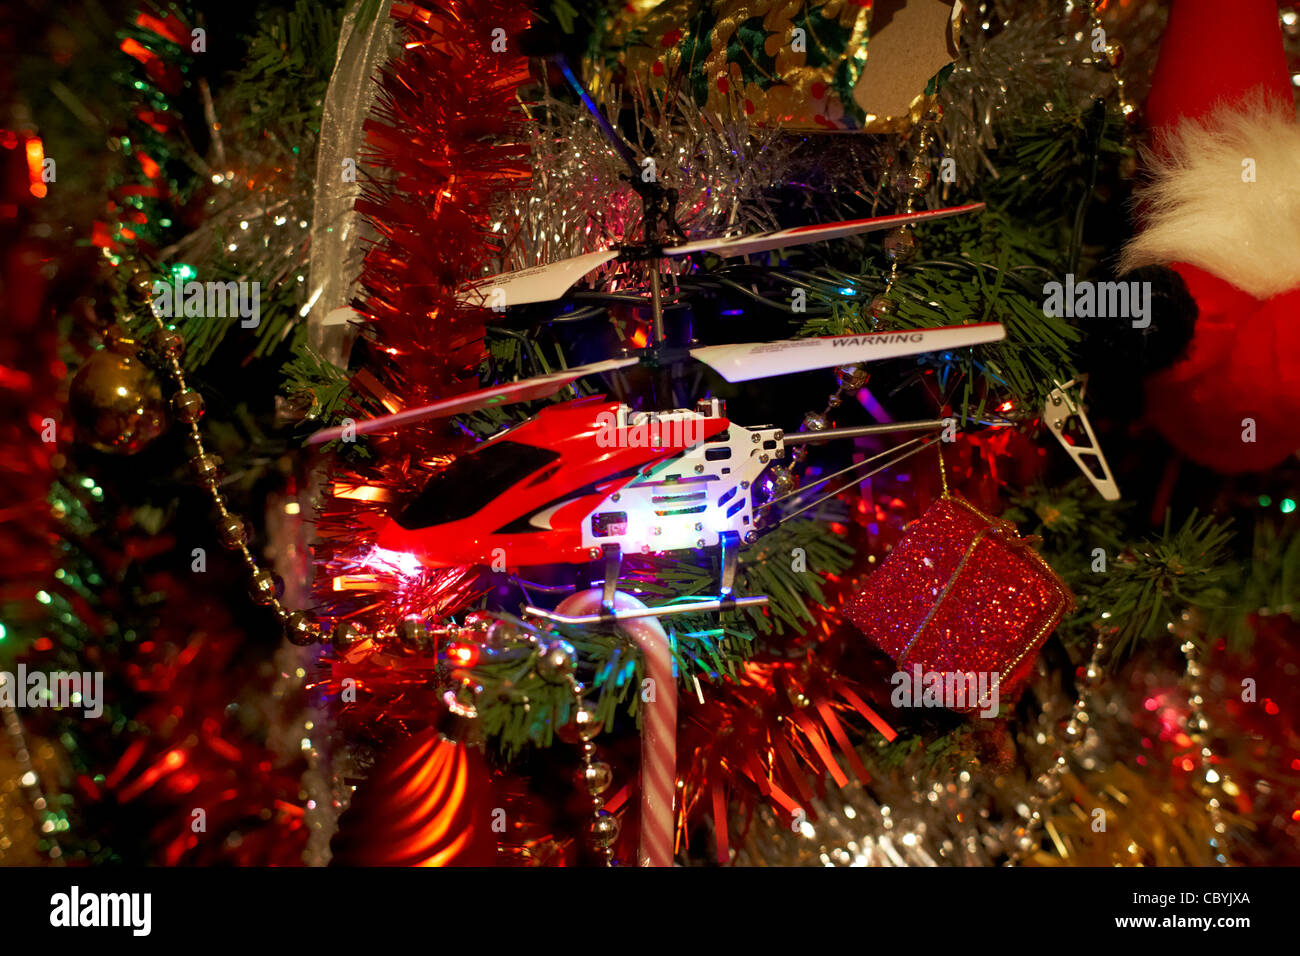 small toy remote controlled helicopter crashed into a christmas tree - Stock Image